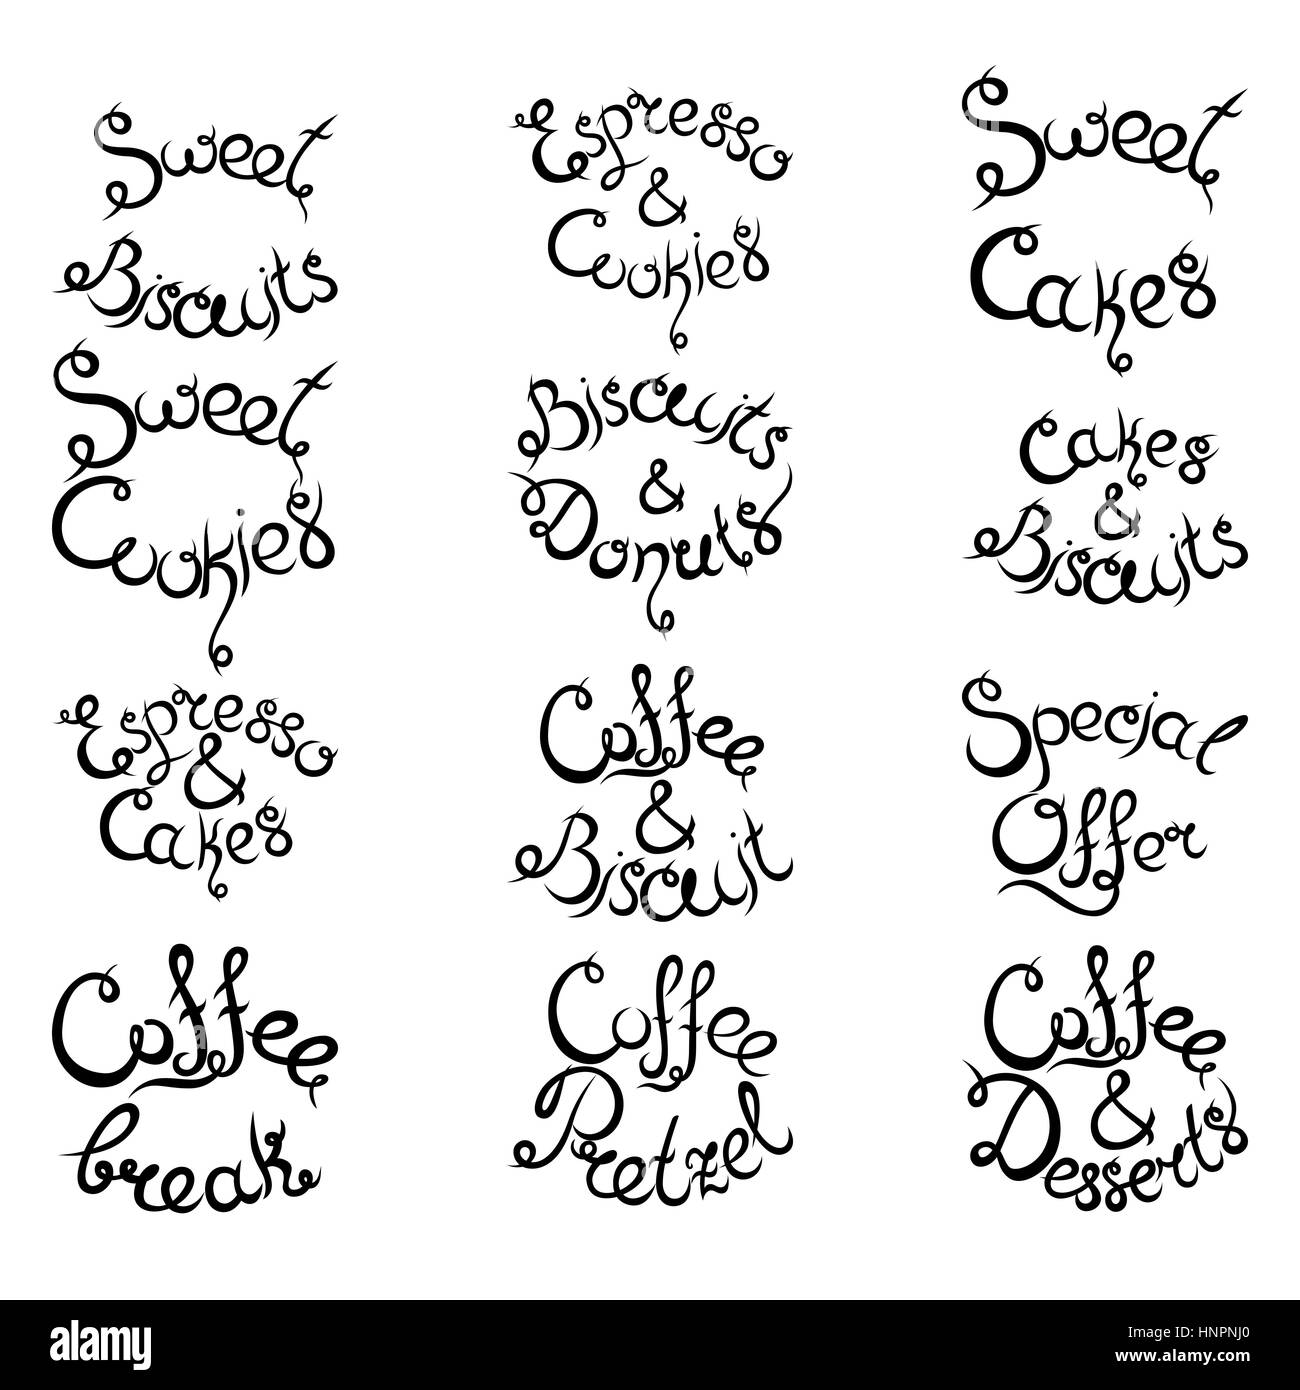 Set 3 of curly hand-drawn lettering Phrases for Coffee Shop. Espresso Cappuccino Cakes Donuts Macarons Cookies Biscuits Stock Vector